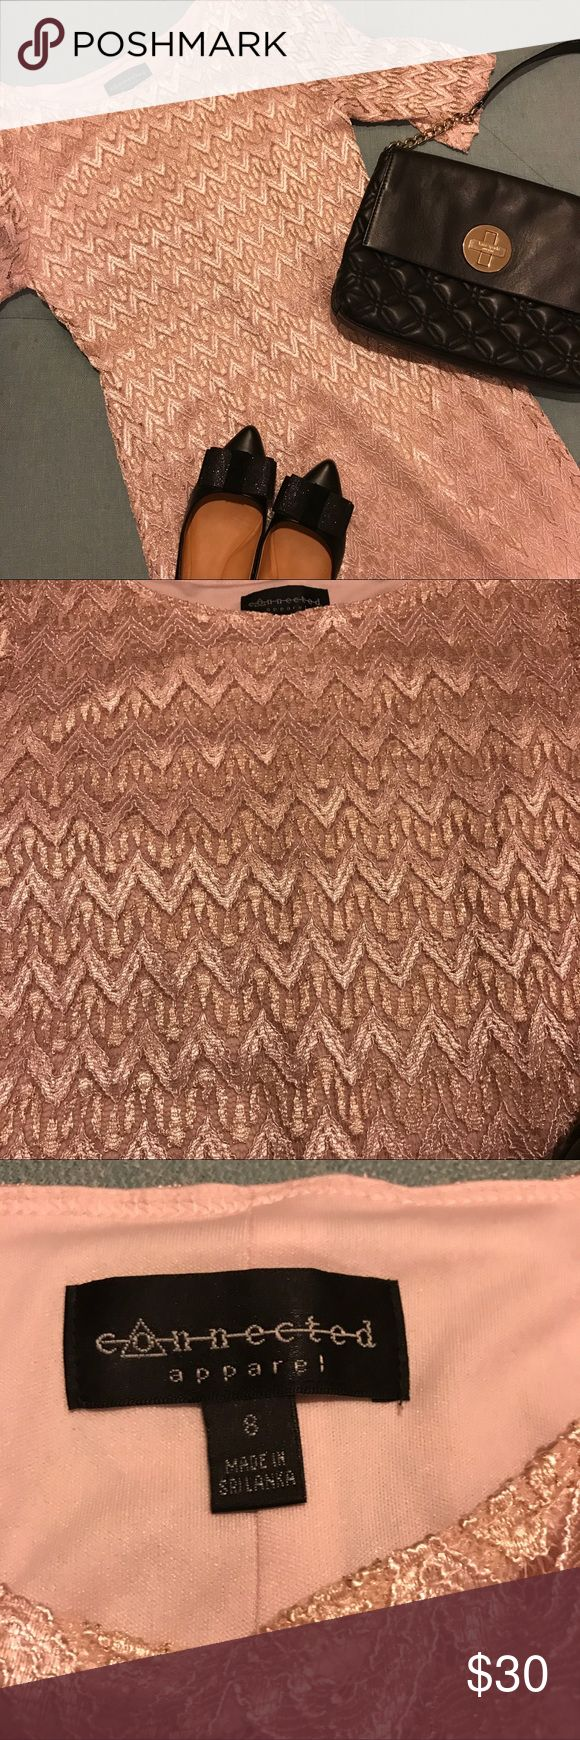 Bergners/Connected Apparel - Rose Gold Lace Dress Beautiful, chevron patterned lace dress! Worn once in a wedding. No longer need. Hits below the knees. Fits more like a small/medium. Dress has some stretch to it. Fully lined! No tears, snags, or stains. Offers welcomed! Dresses Midi